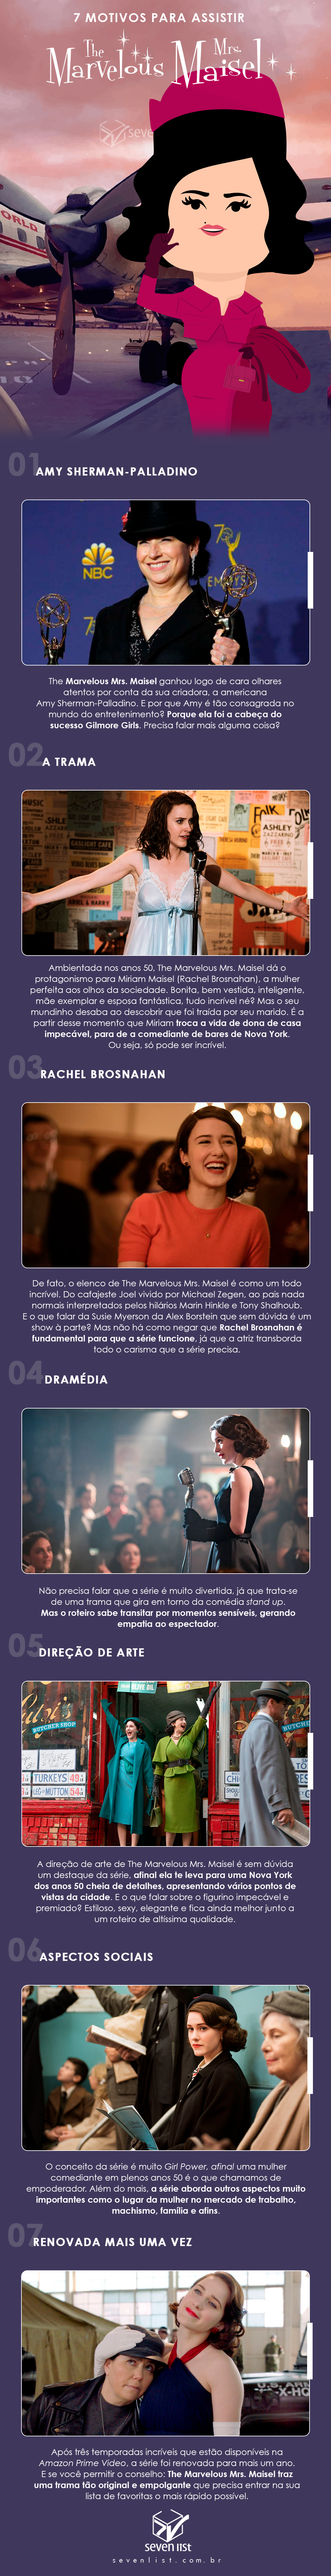 The Marvelous Mrs. Maisel - Série da Amazon Prime Vídeo - Seven List